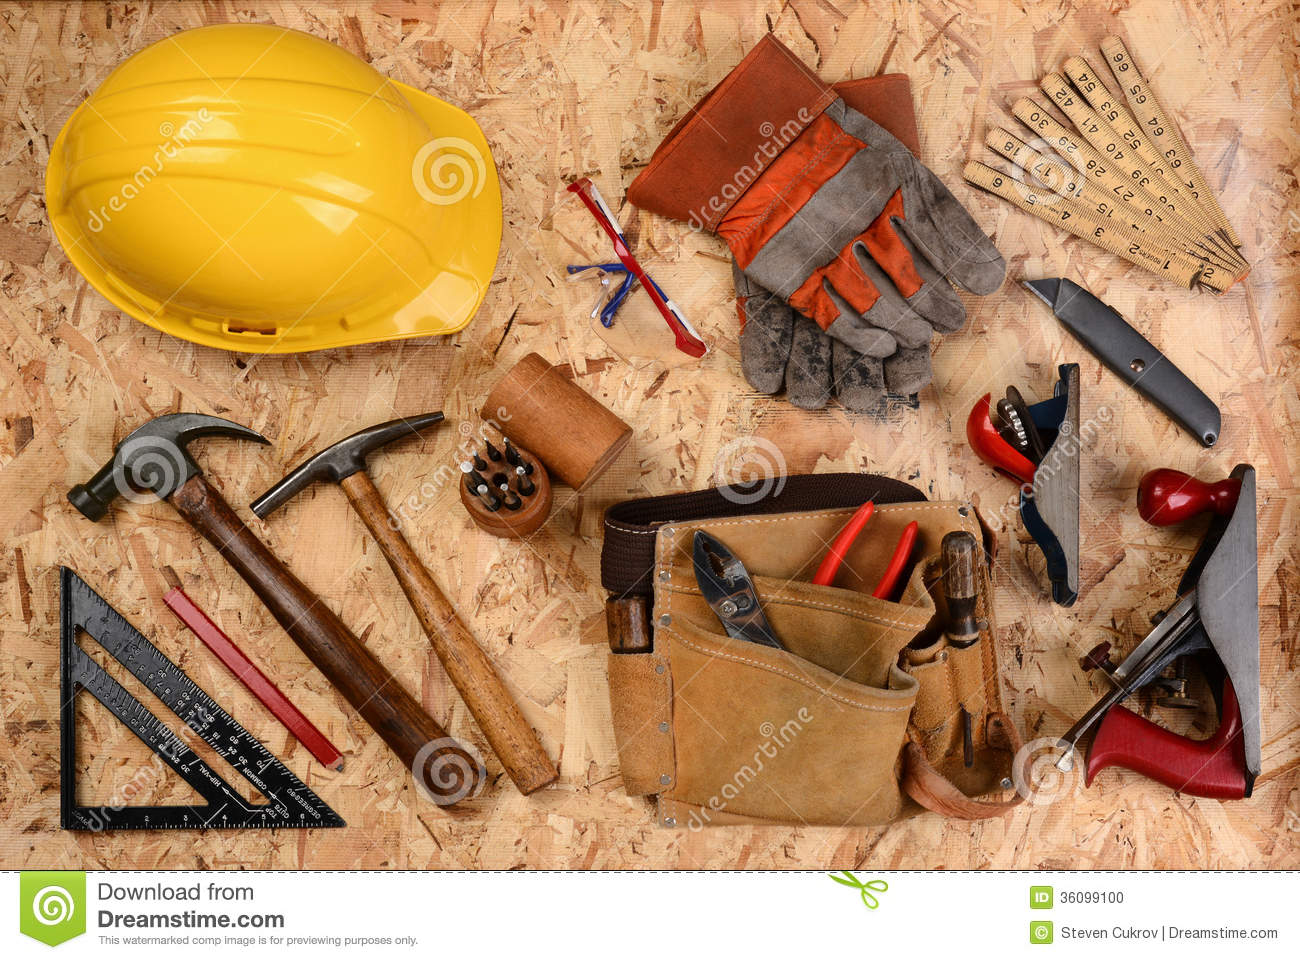 Construction Equipment on Plywood